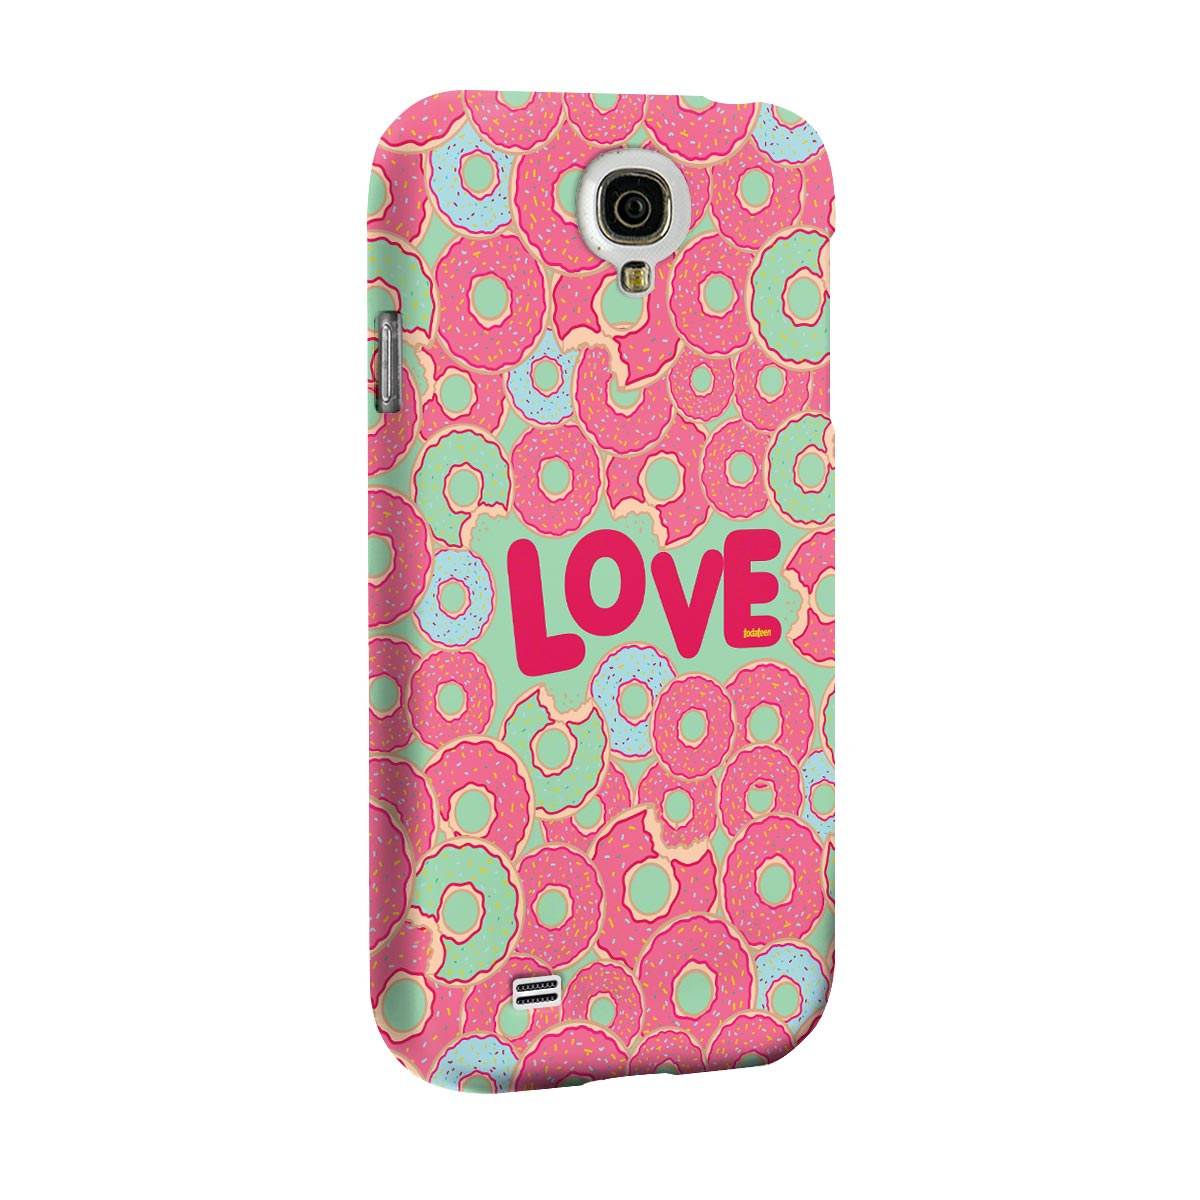 Capa para Galaxy S4 TodaTeen Love Donuts!